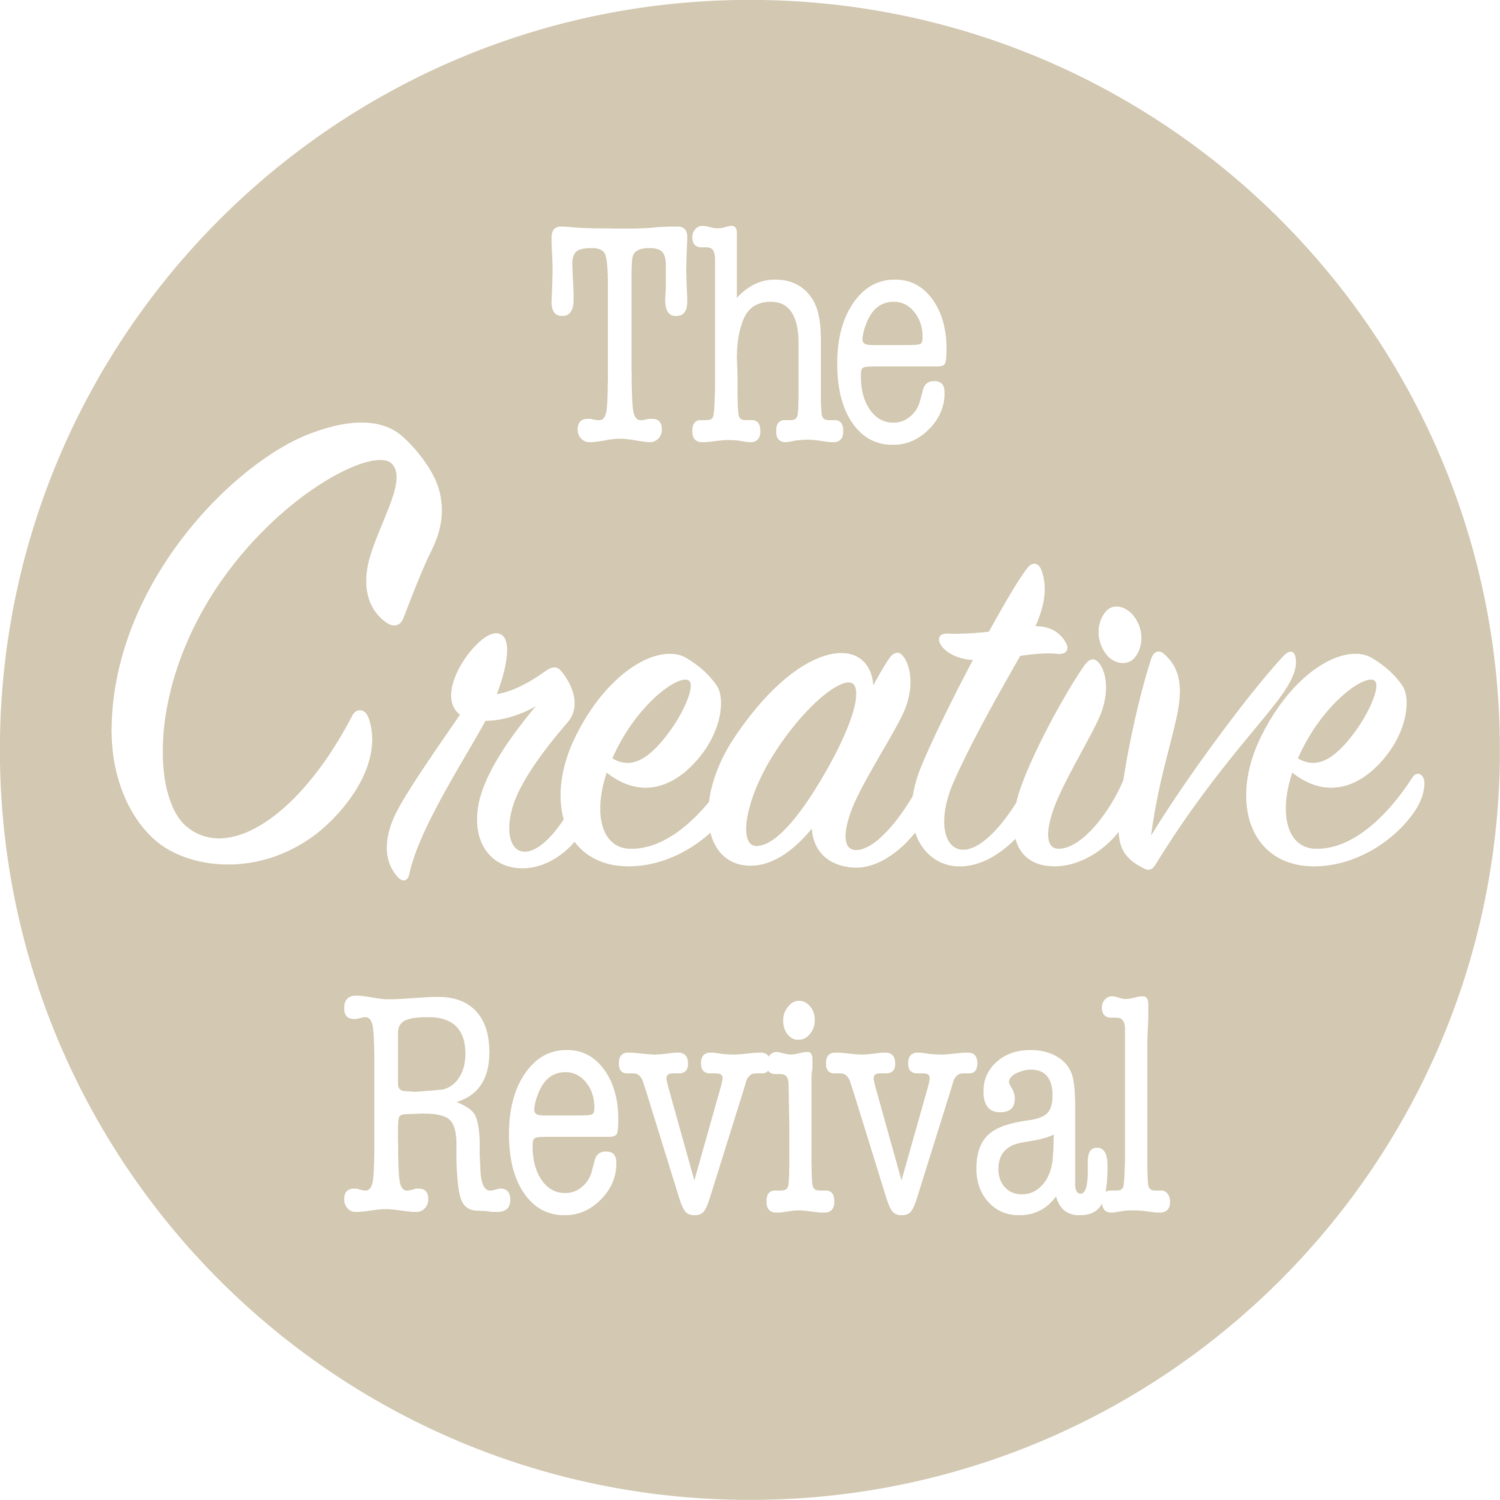 The Creative Revival